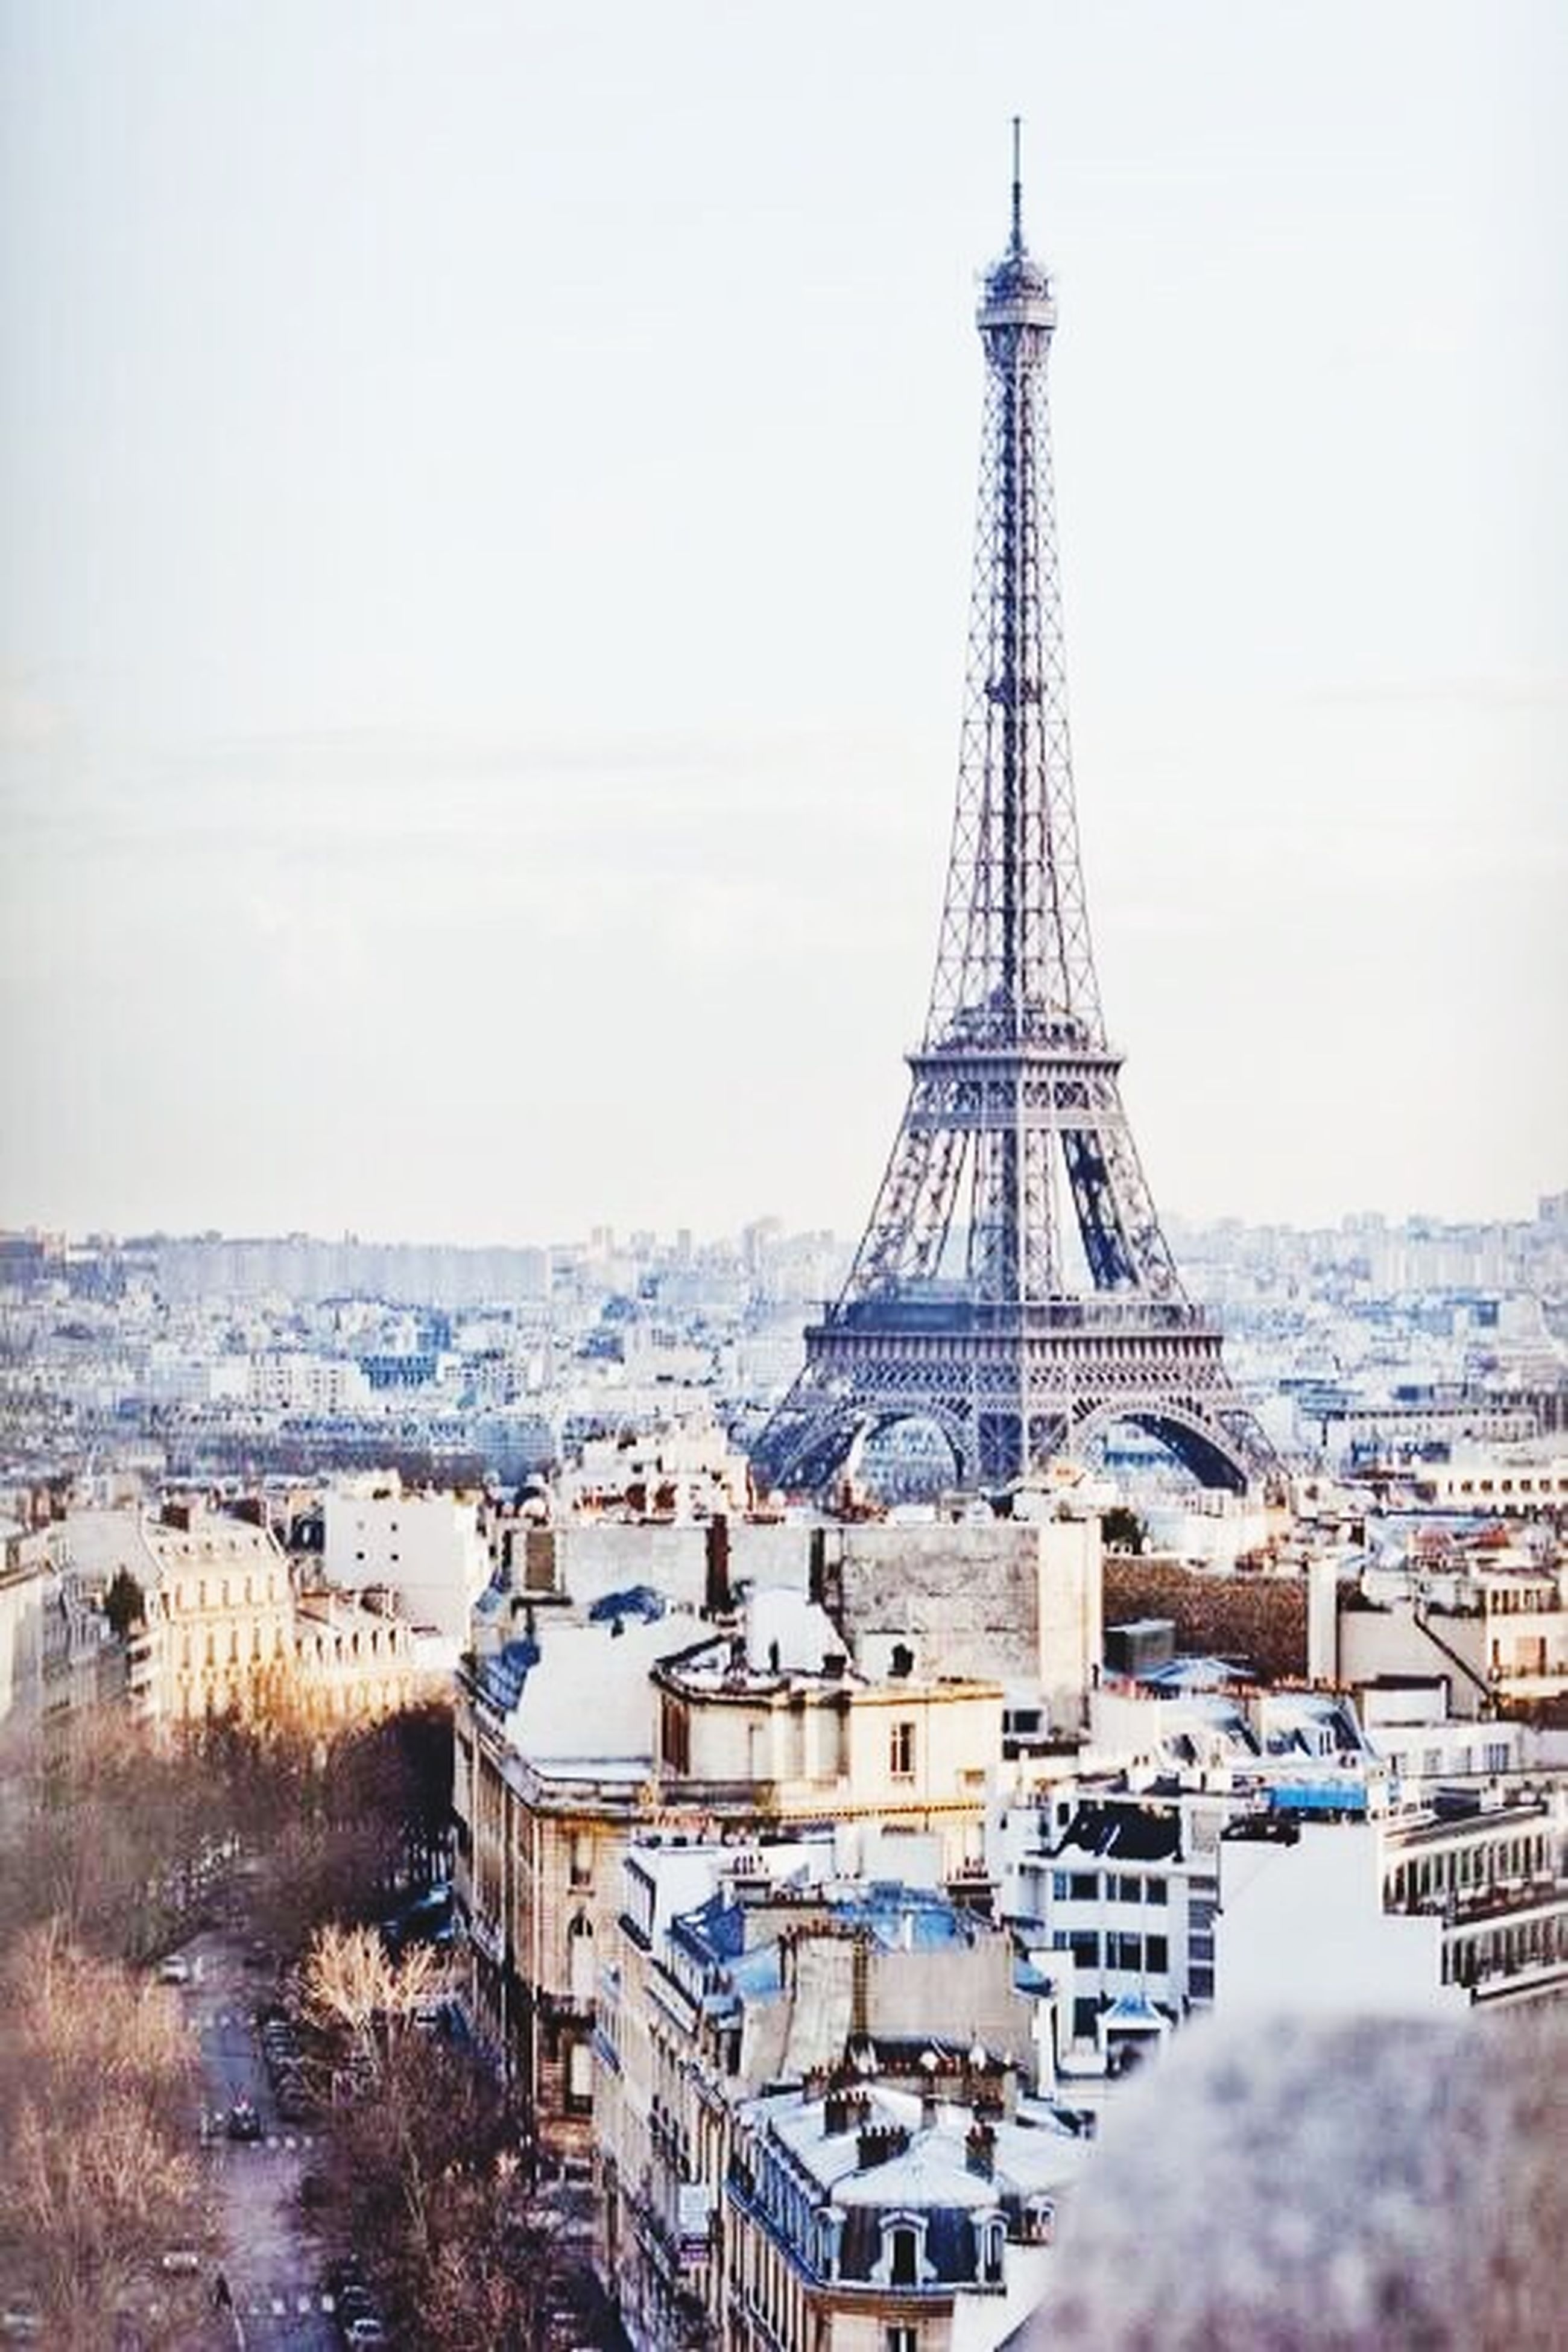 architecture, built structure, famous place, travel destinations, tourism, international landmark, building exterior, clear sky, travel, eiffel tower, water, capital cities, incidental people, culture, tower, sky, city, day, sea, outdoors